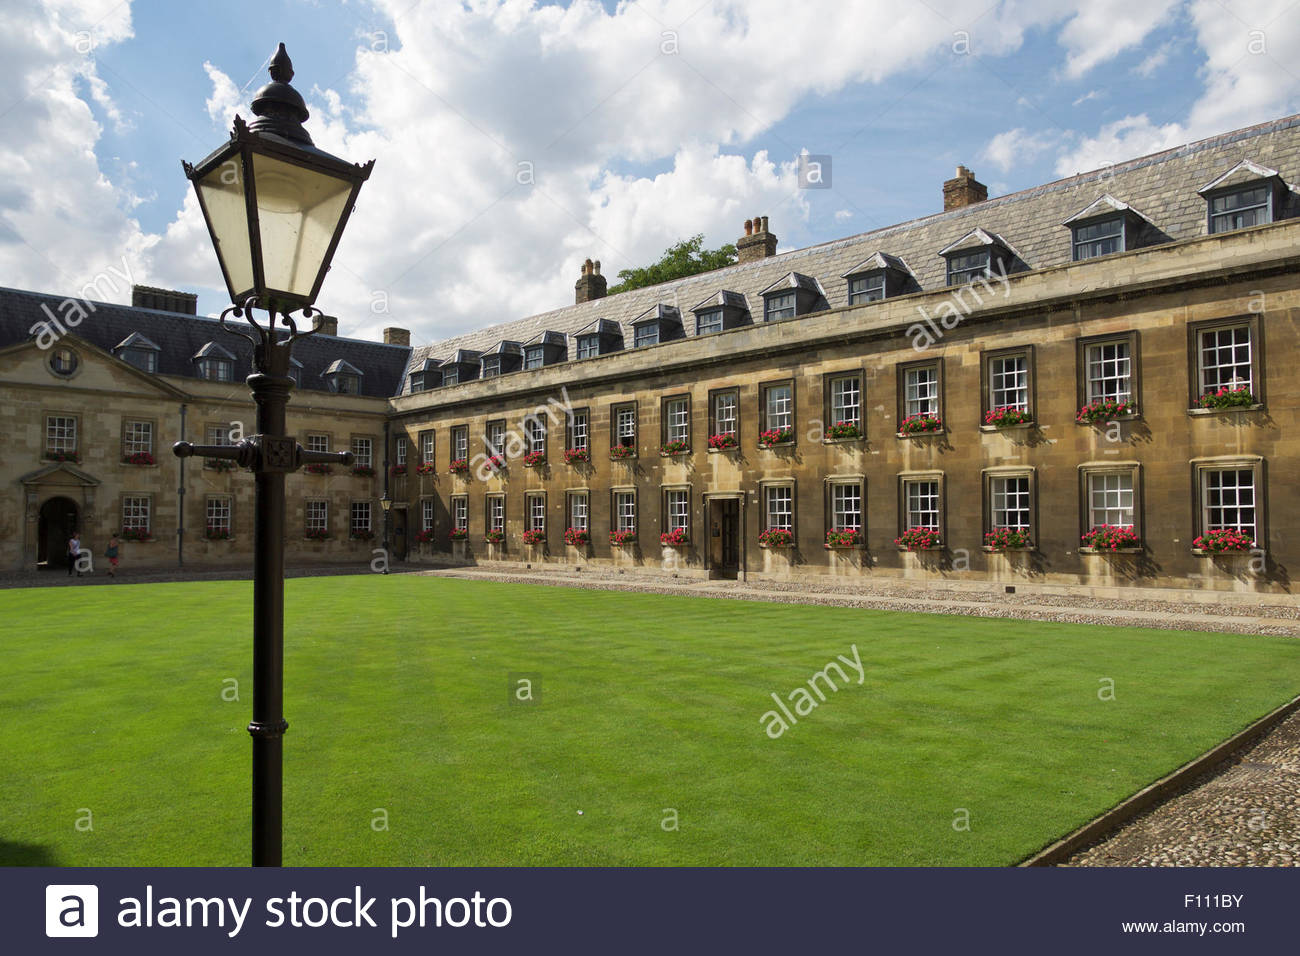 Old Court of Peterhouse College: Cambridge. - Stock Image